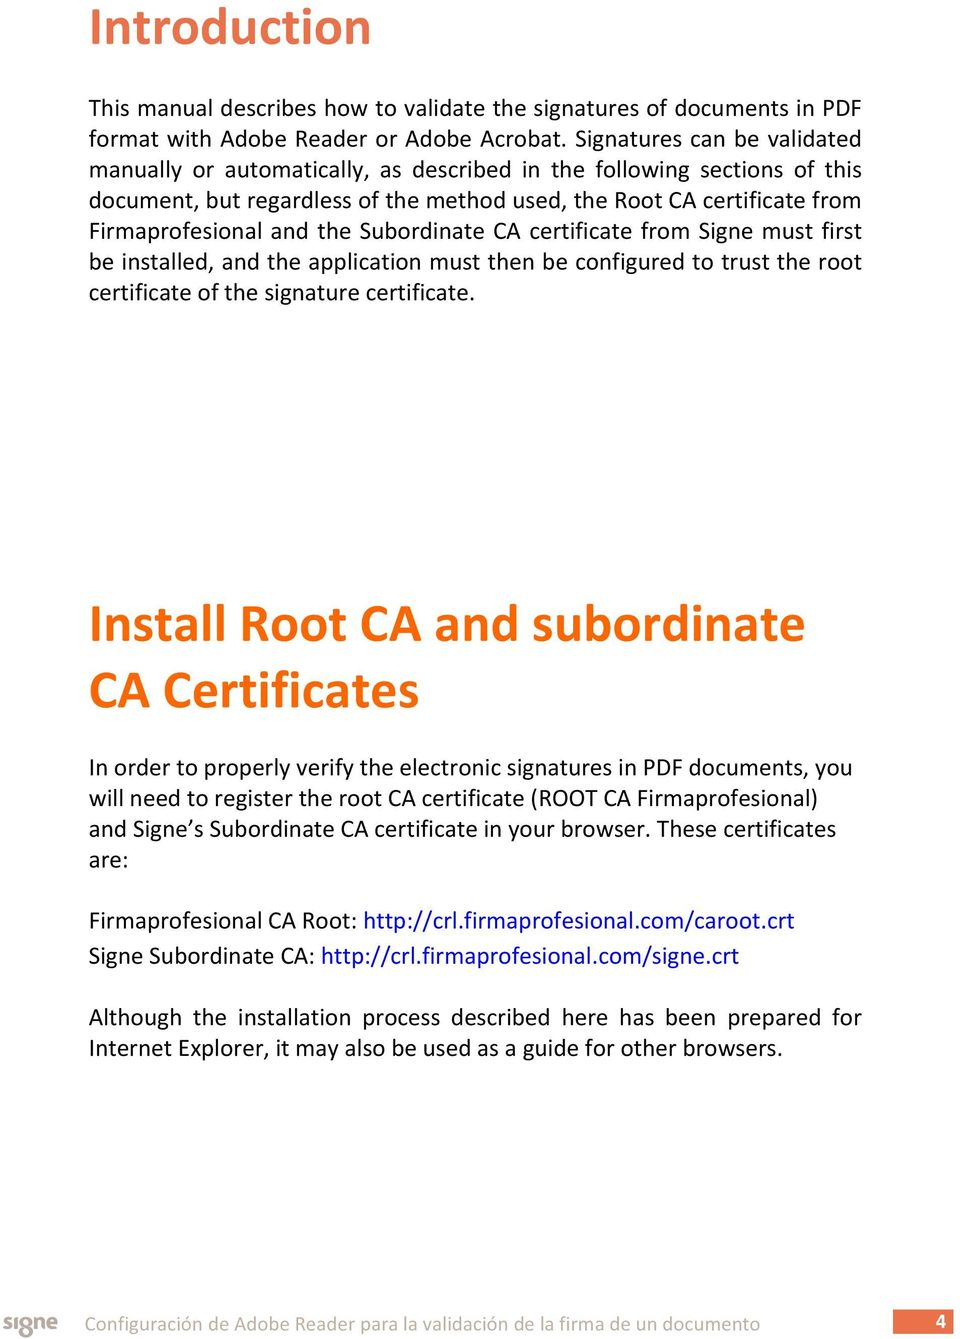 the Subordinate CA certificate from Signe must first be installed, and the application must then be configured to trust the root certificate of the signature certificate.